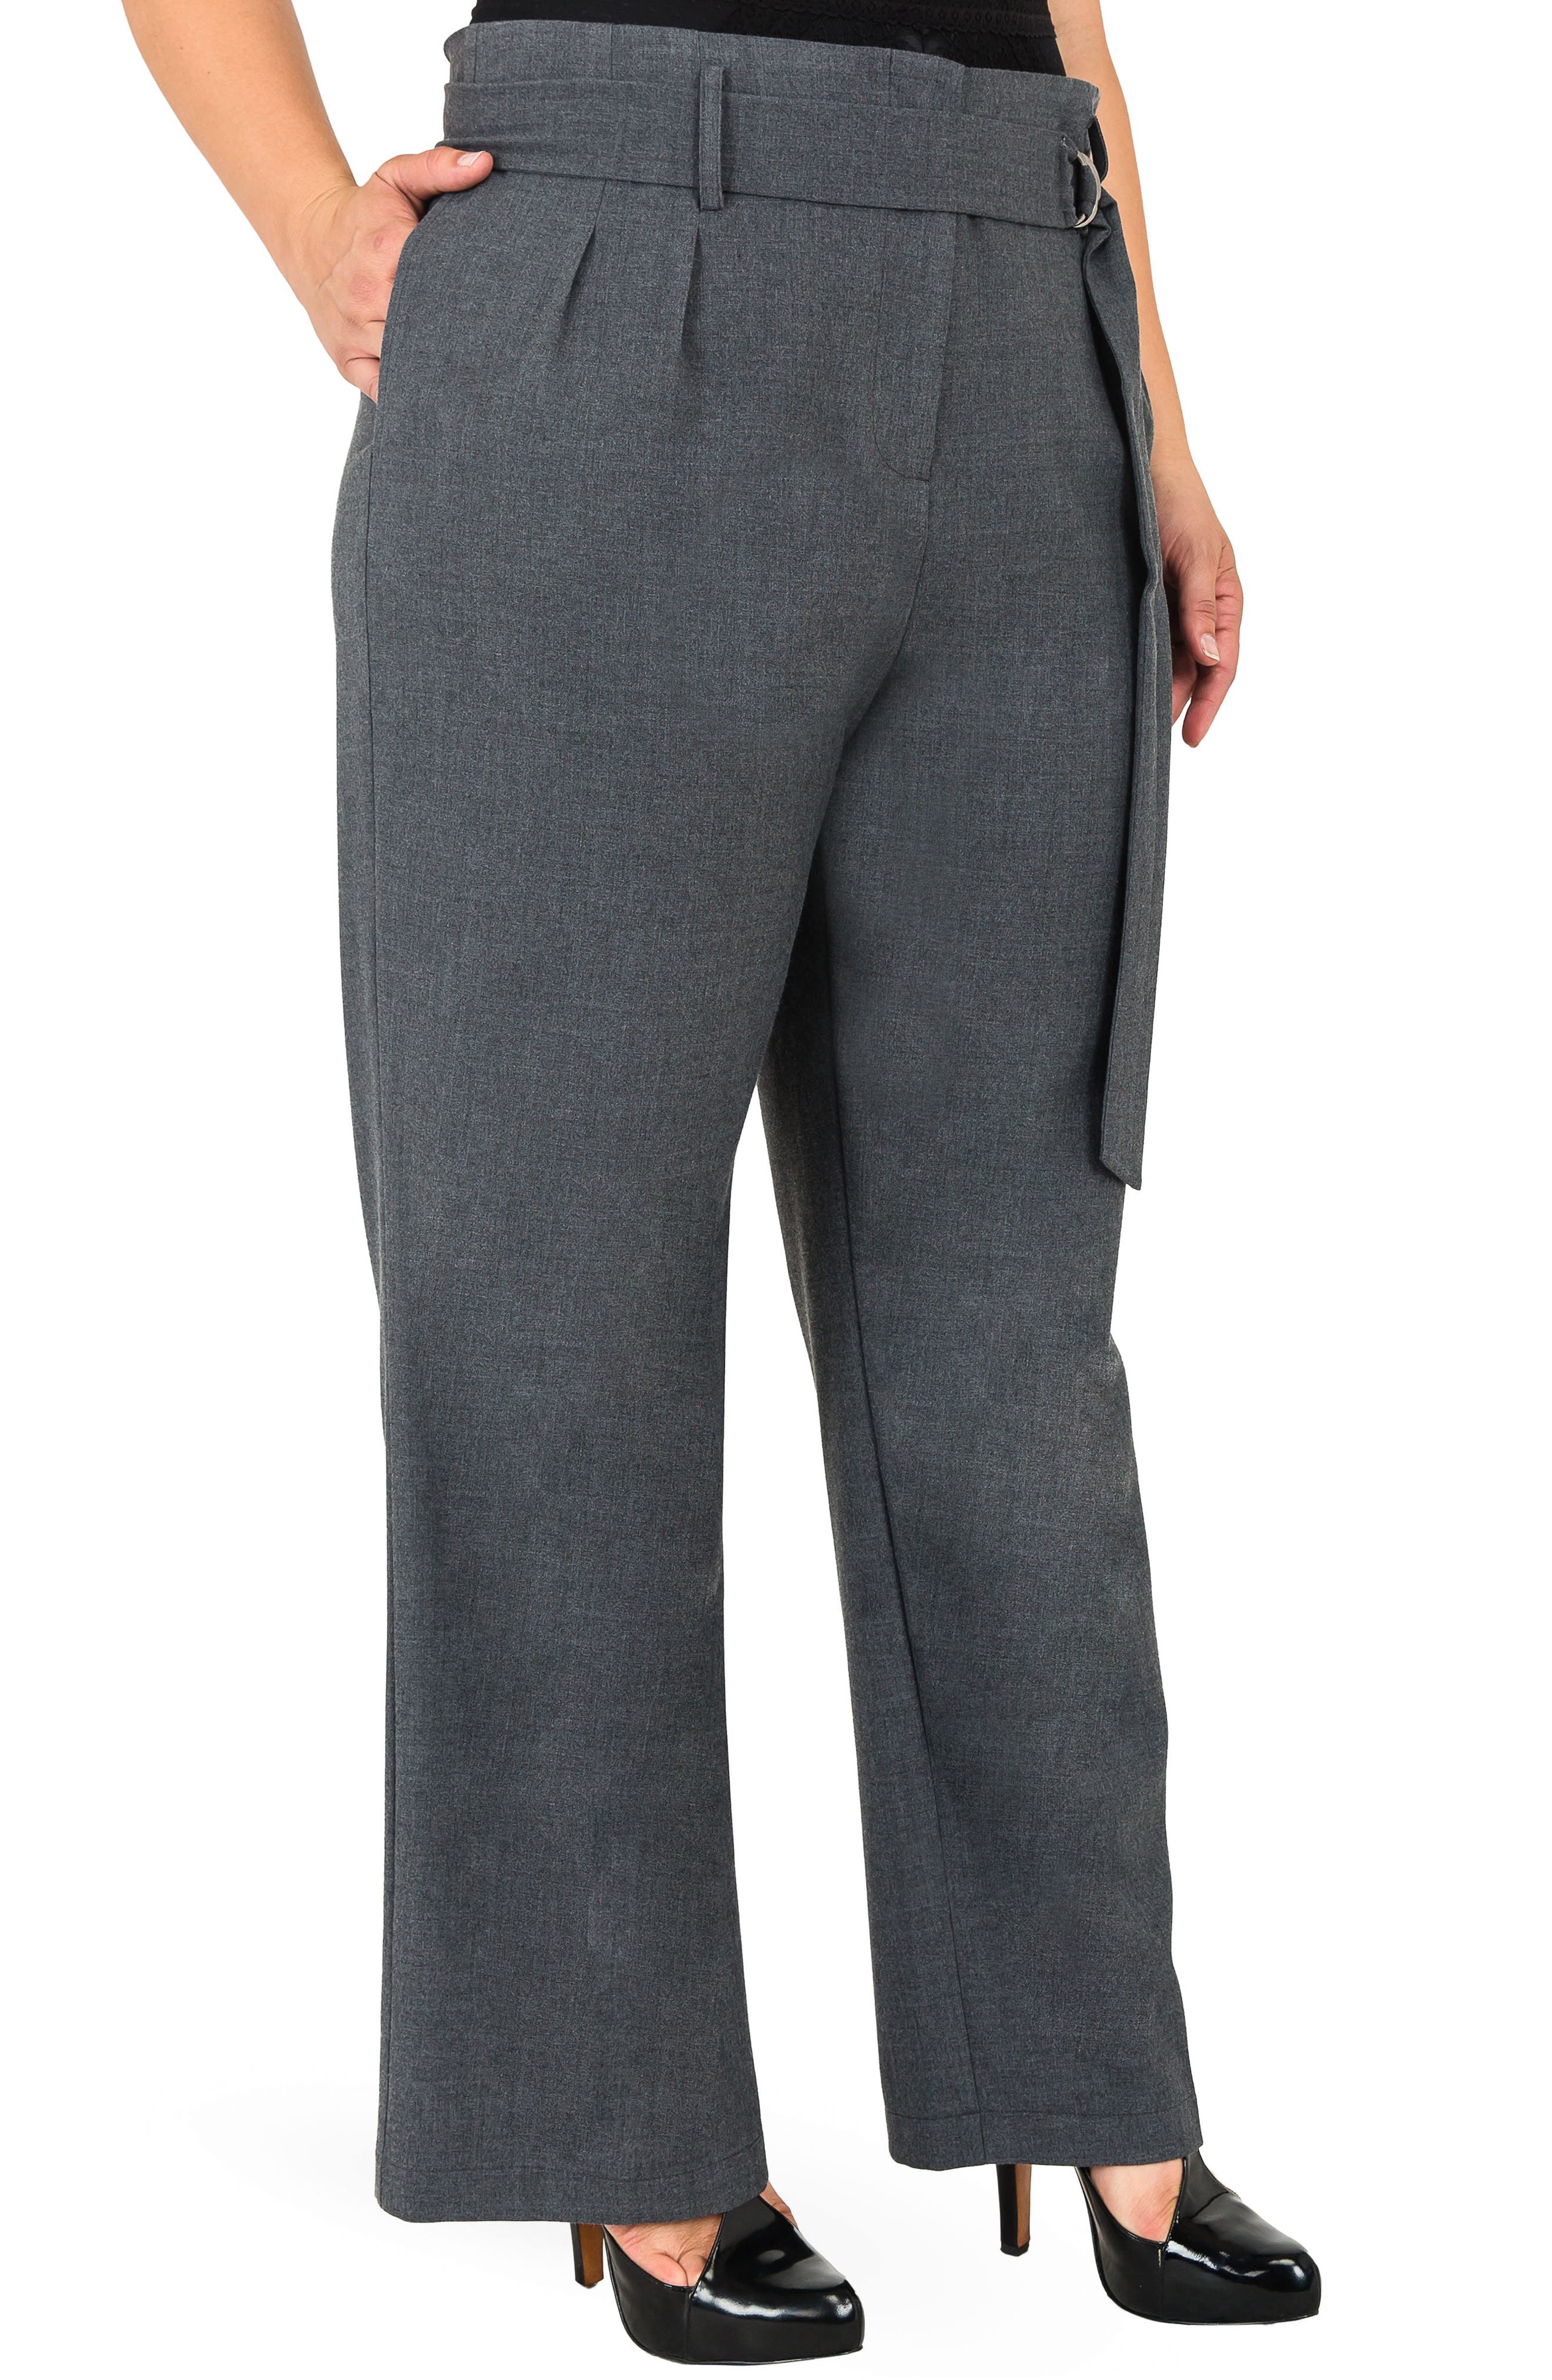 Franchesca High Rise Paperbag Trousers,                             Alternate thumbnail 3, color,                             CHARCOAL